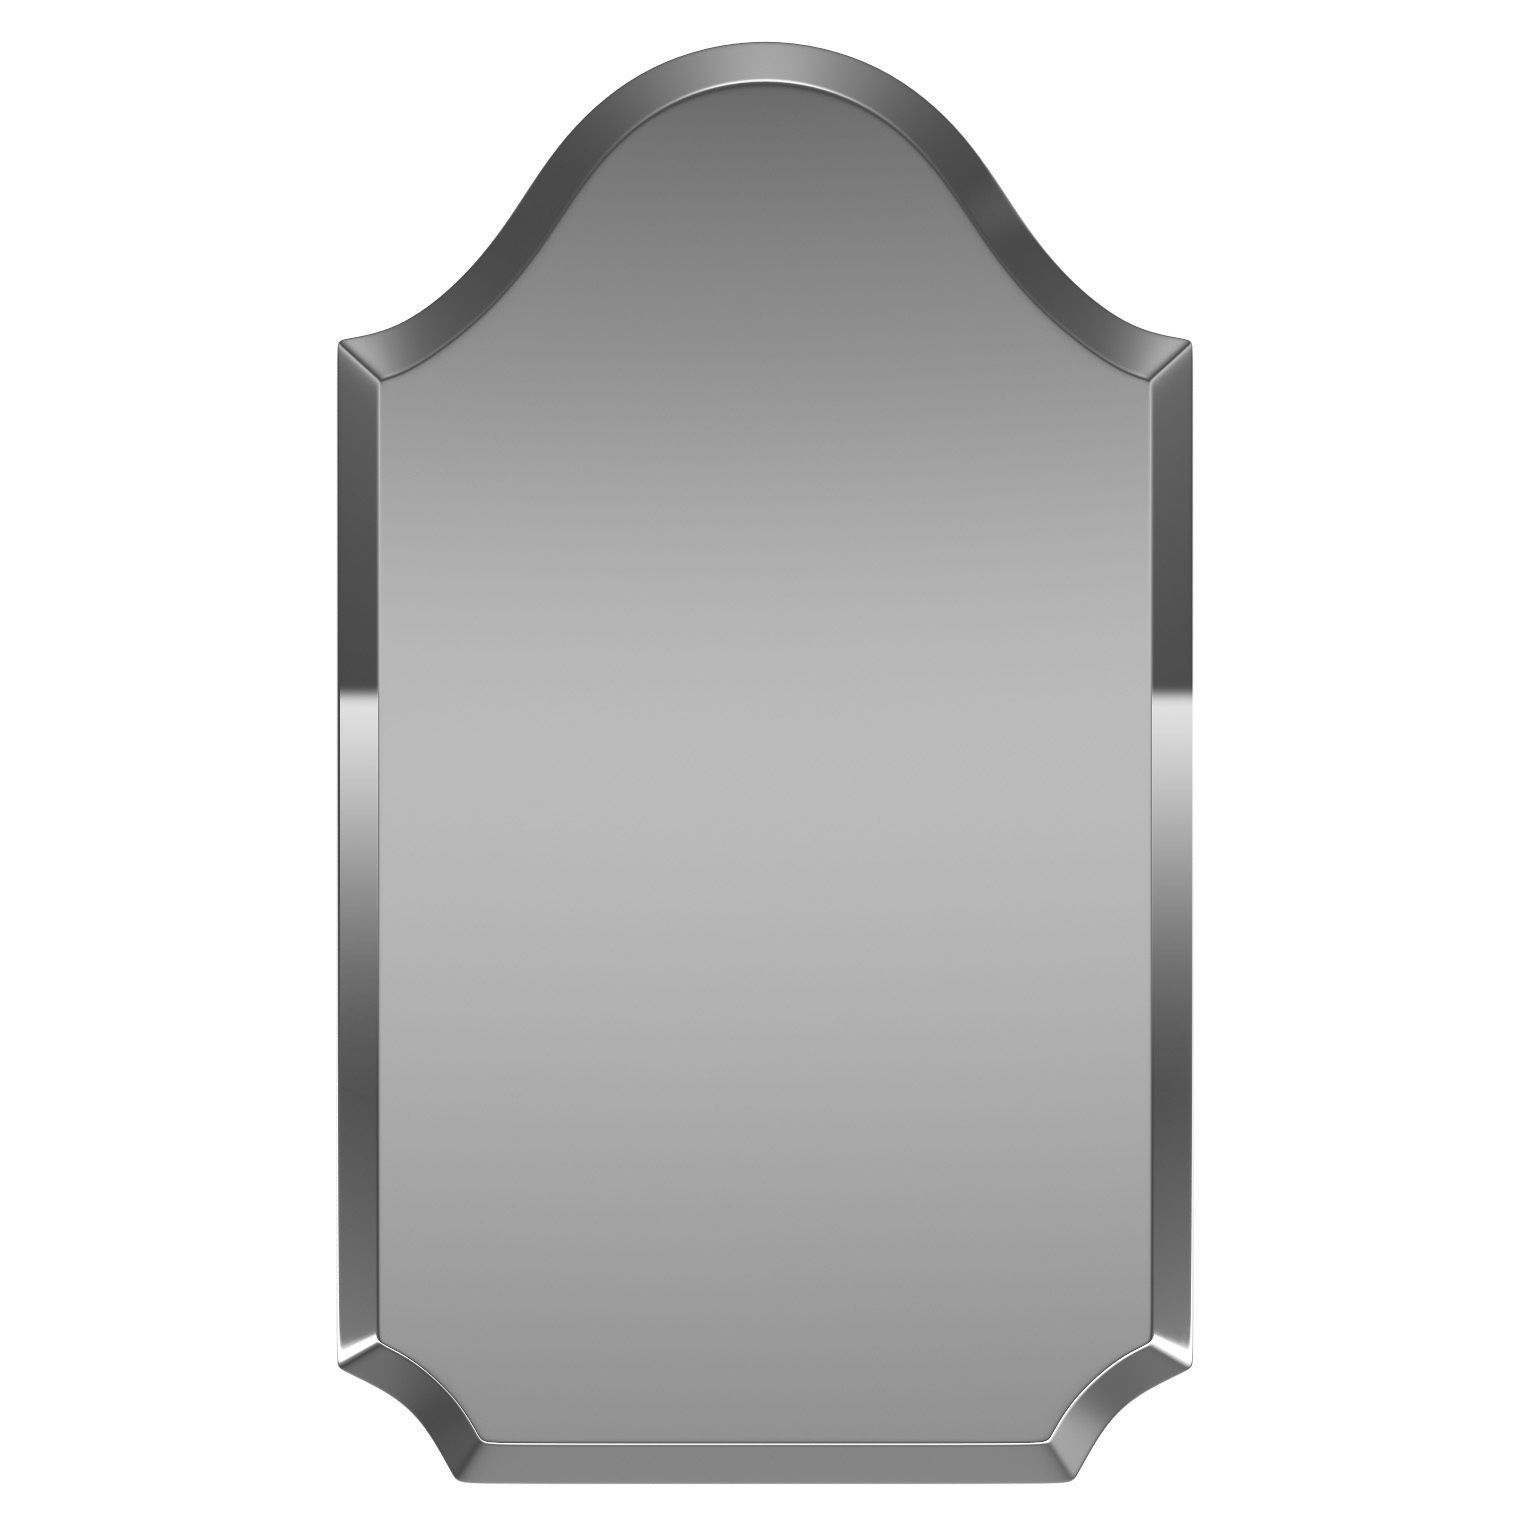 2020 Dariel Tall Arched Scalloped Wall Mirror Wrlo (View 2 of 20)